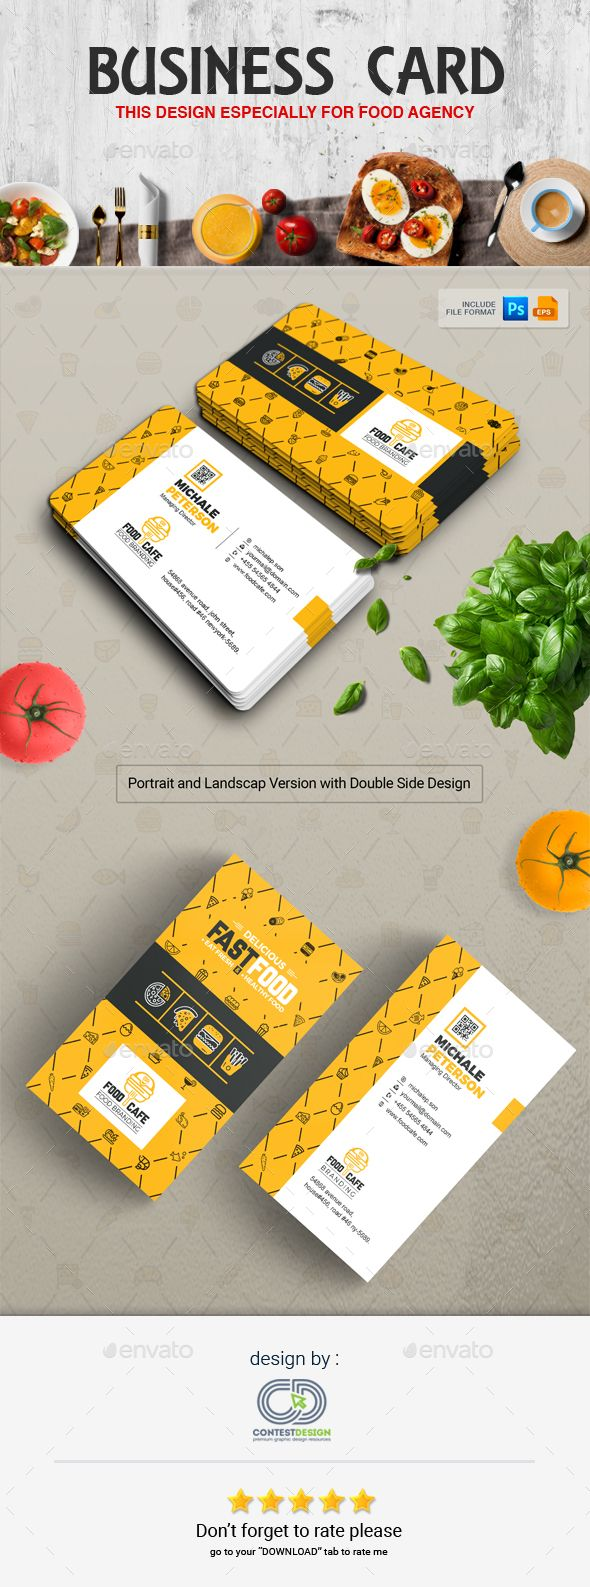 Best 25 business card design templates ideas on pinterest business card design template for fast food restaurants cafe industry specific business magicingreecefo Image collections